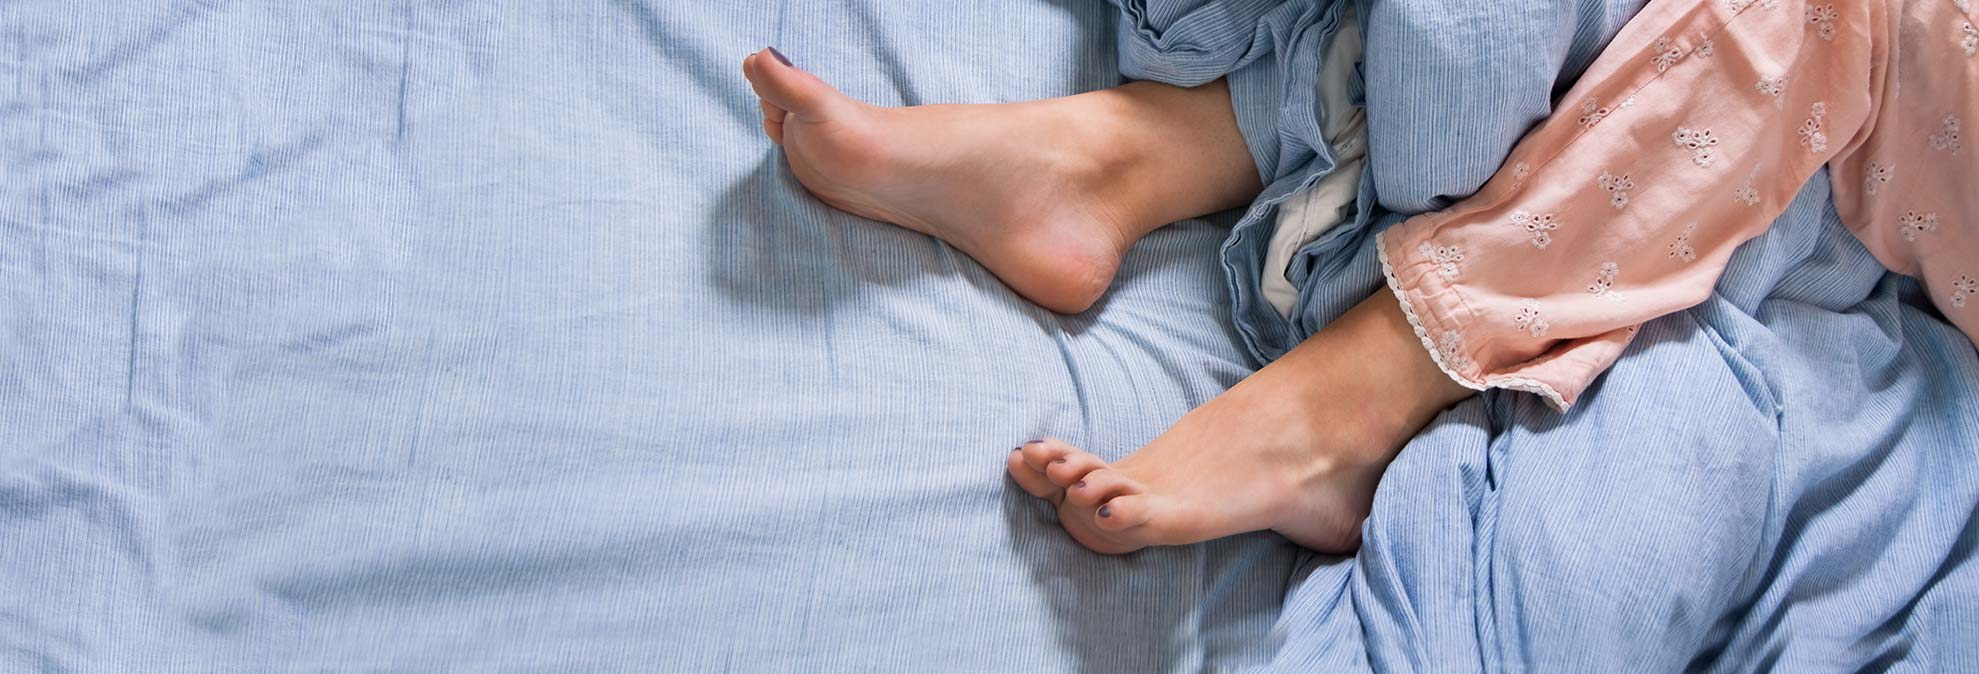 5 Things to Know About Restless Legs Syndrome